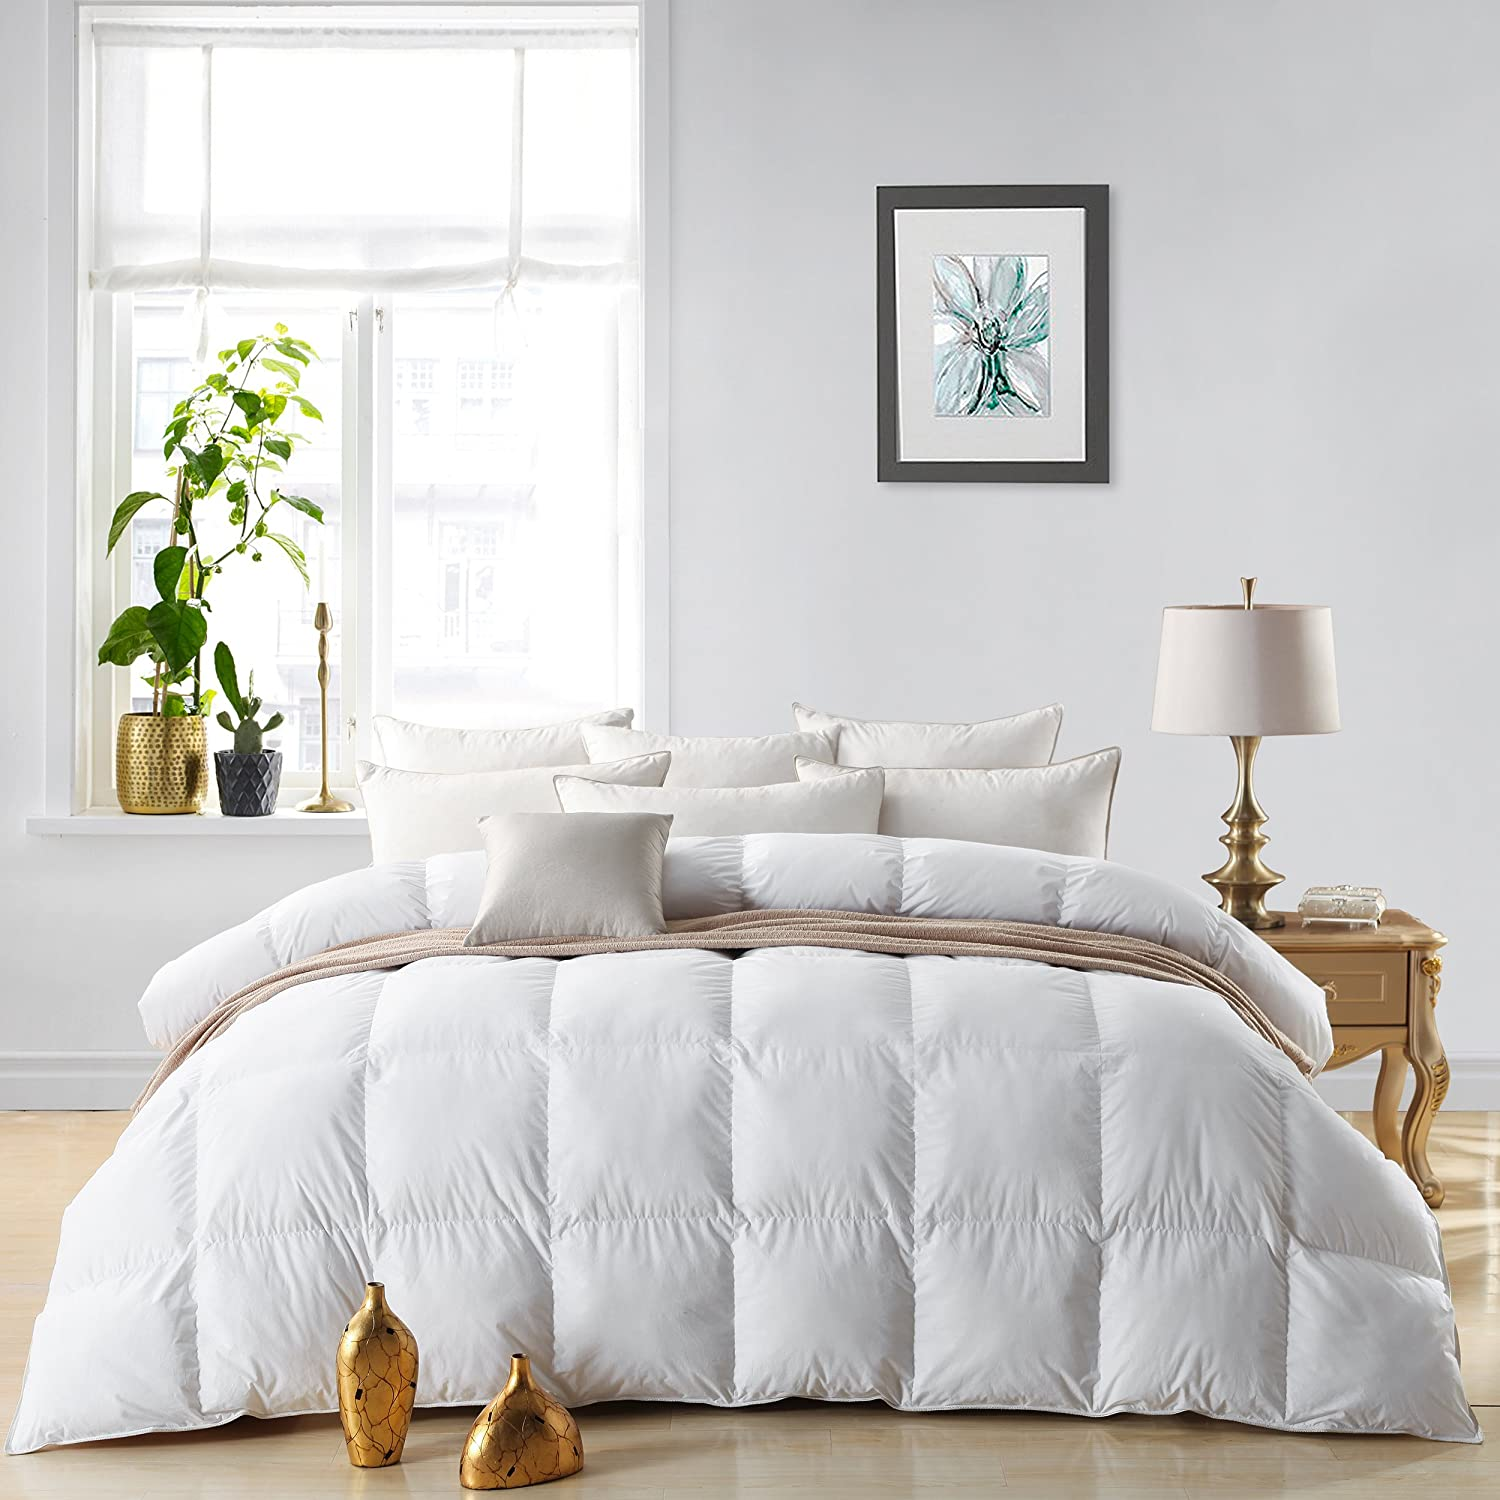 Egyptian Bedding LUXURIOUS 800 Thread Count HUNGARIAN GOOSE DOWN Comforter Duvet Insert 100% Egyptian Cotton Cover